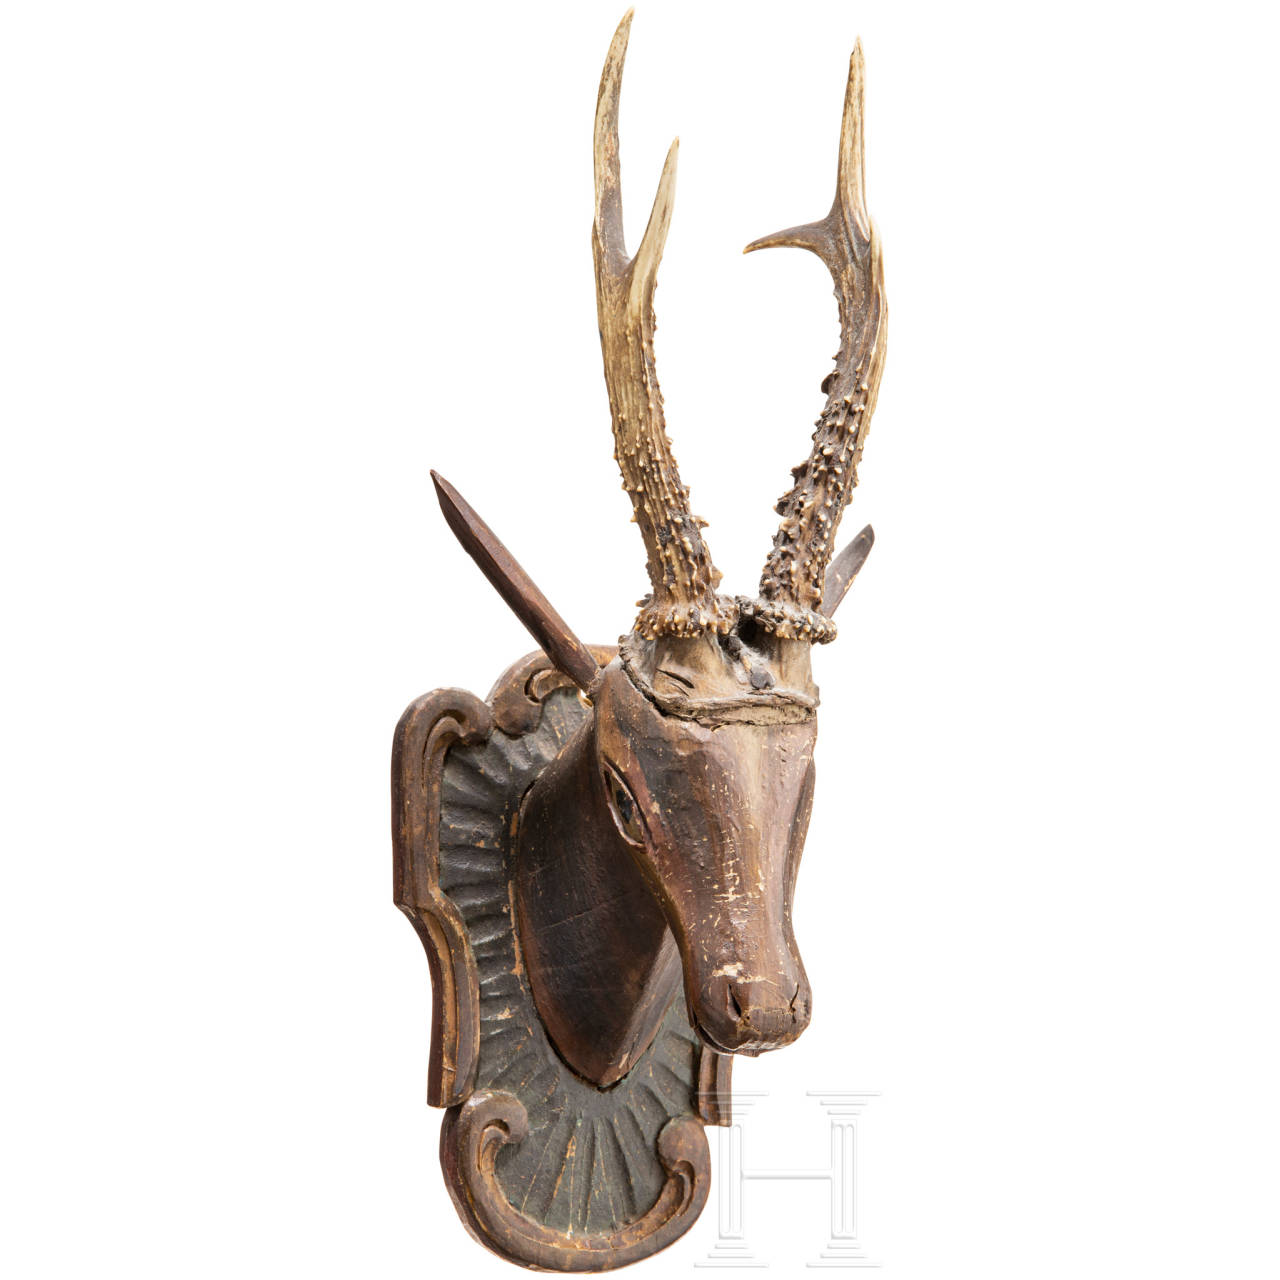 A roebuck trophy on a wood-carved plate, Southern German/Austrian, 19th century